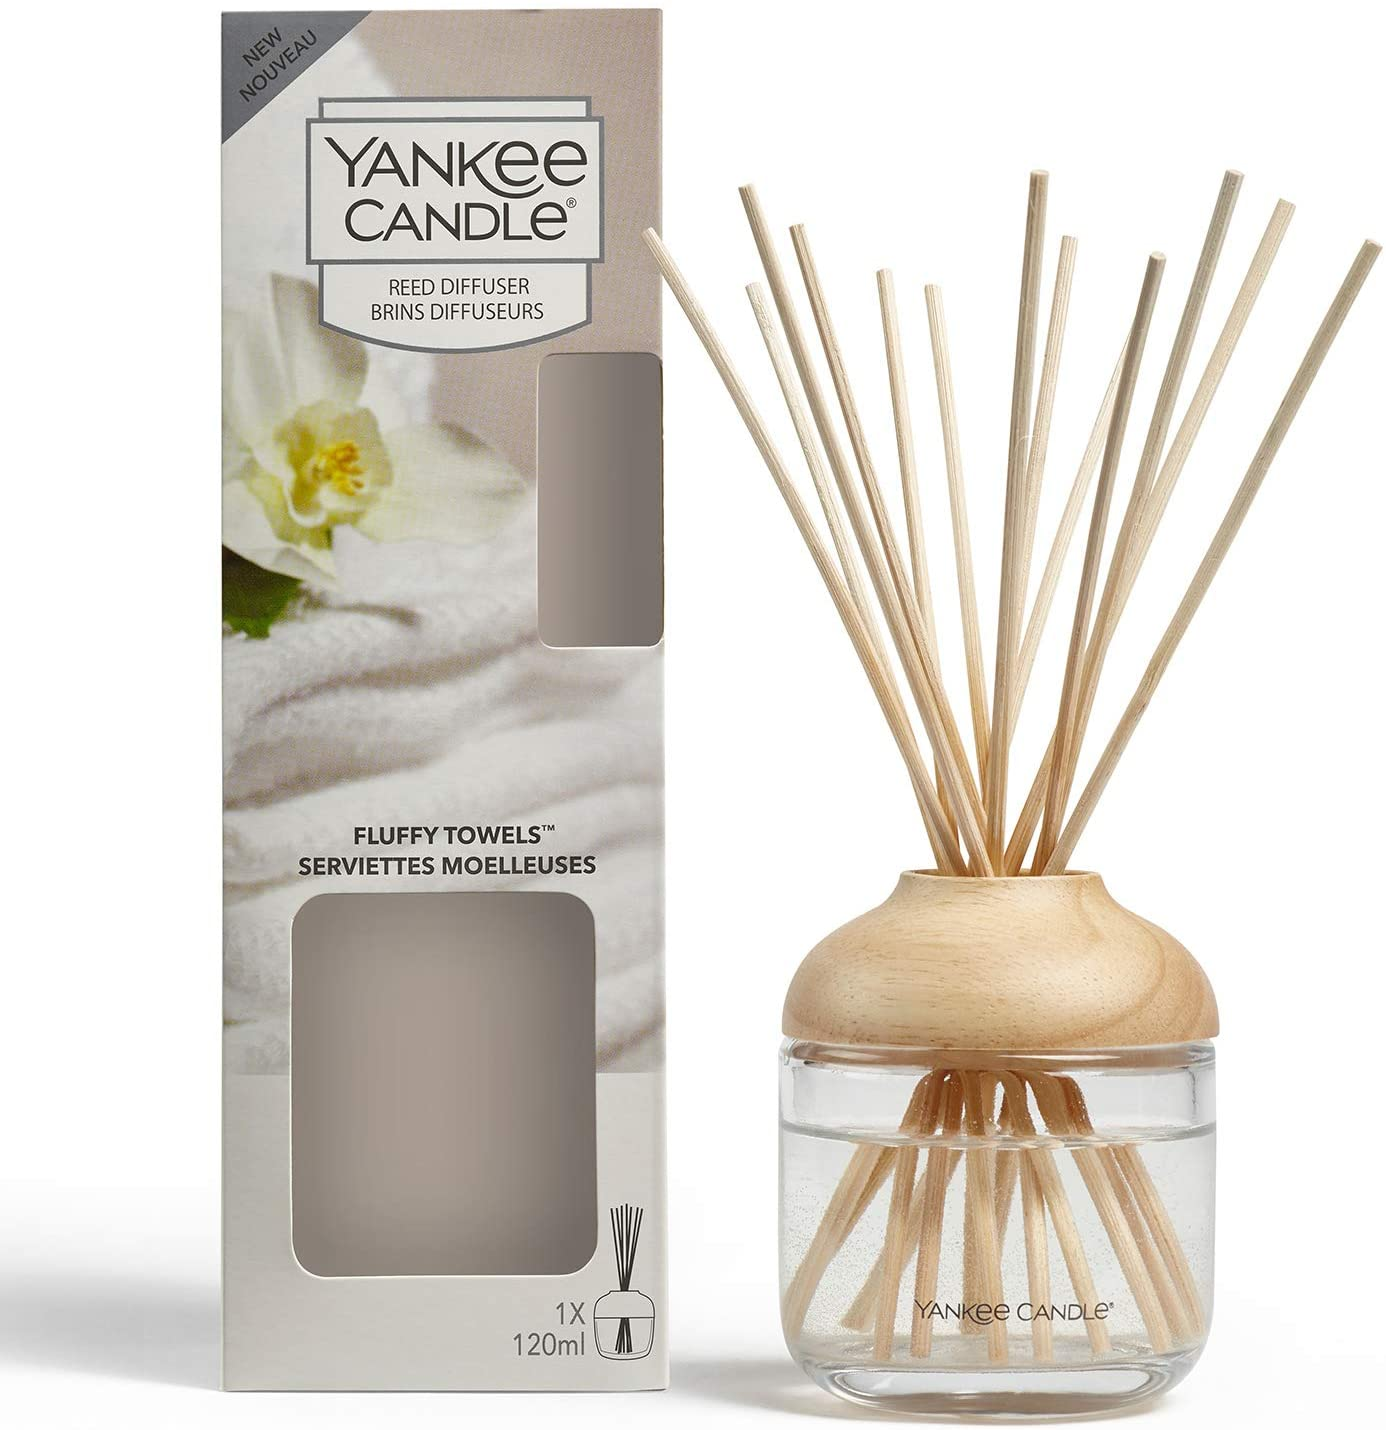 Yankee Candle Fluffy Towels Fragrant Reeds